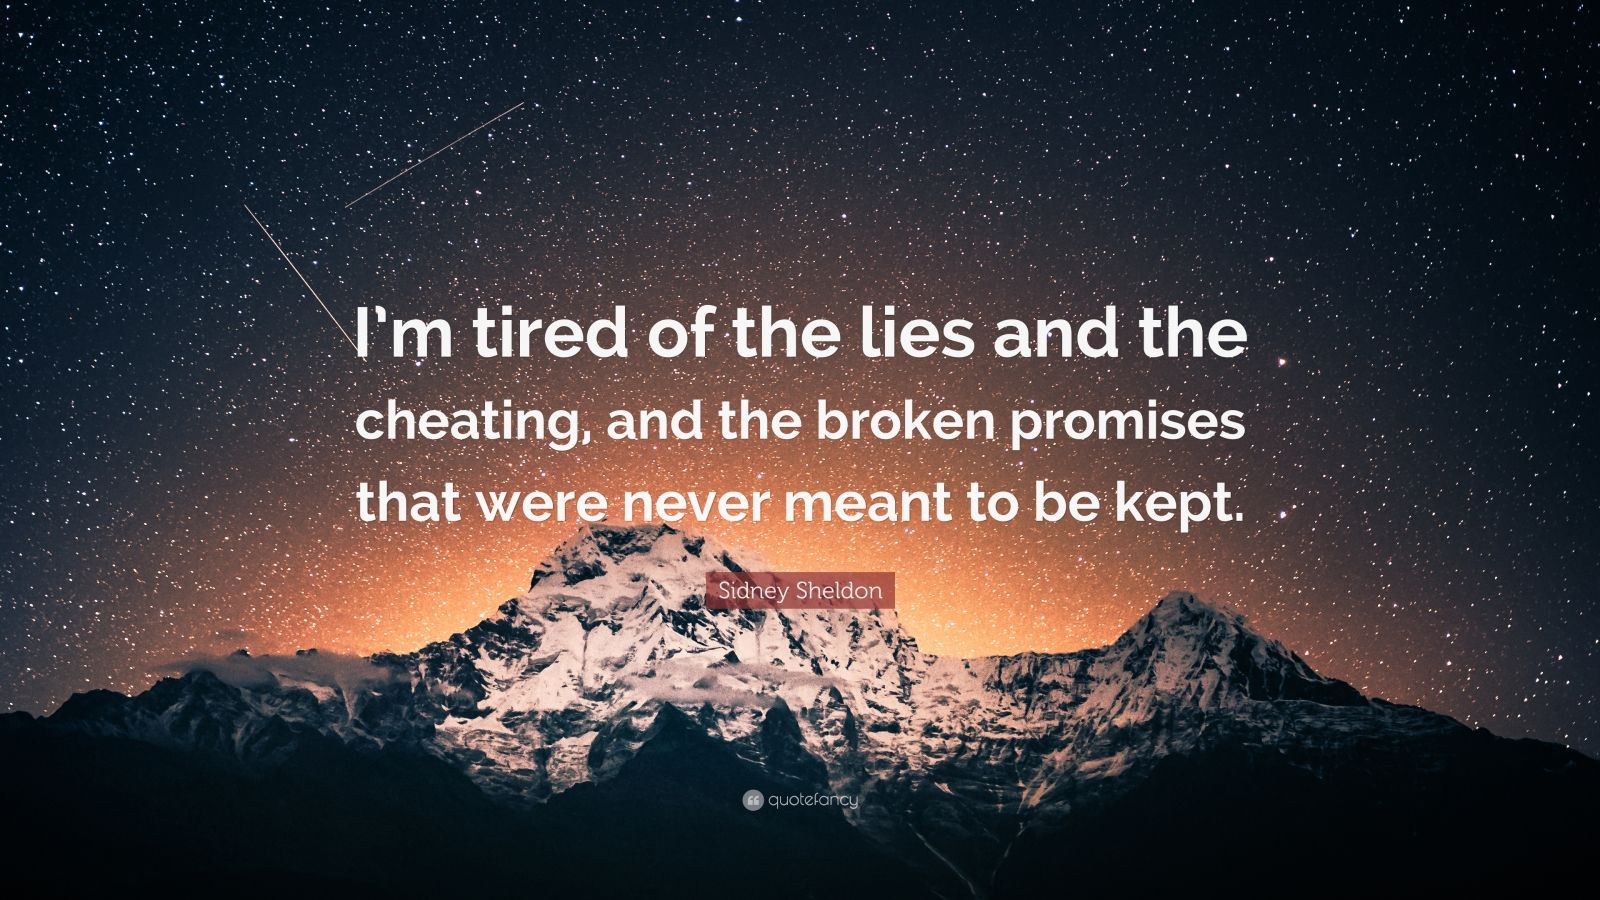 """Sidney Sheldon Quote: """"I'm tired of the lies and the cheating, and the broken promises that were never meant to be kept."""""""